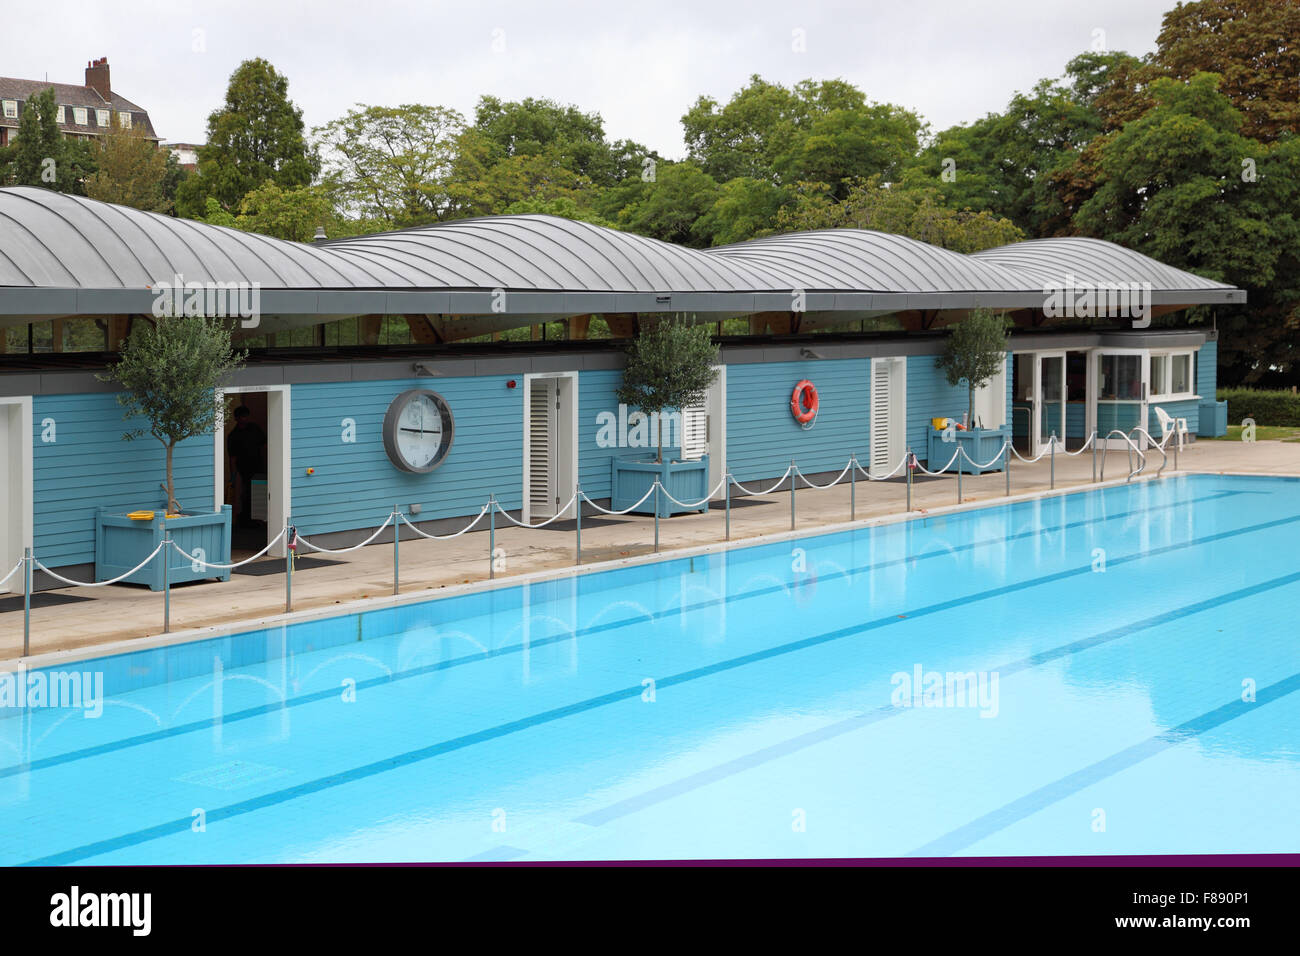 The Open Air Swimming Pool Close To The River Thames At